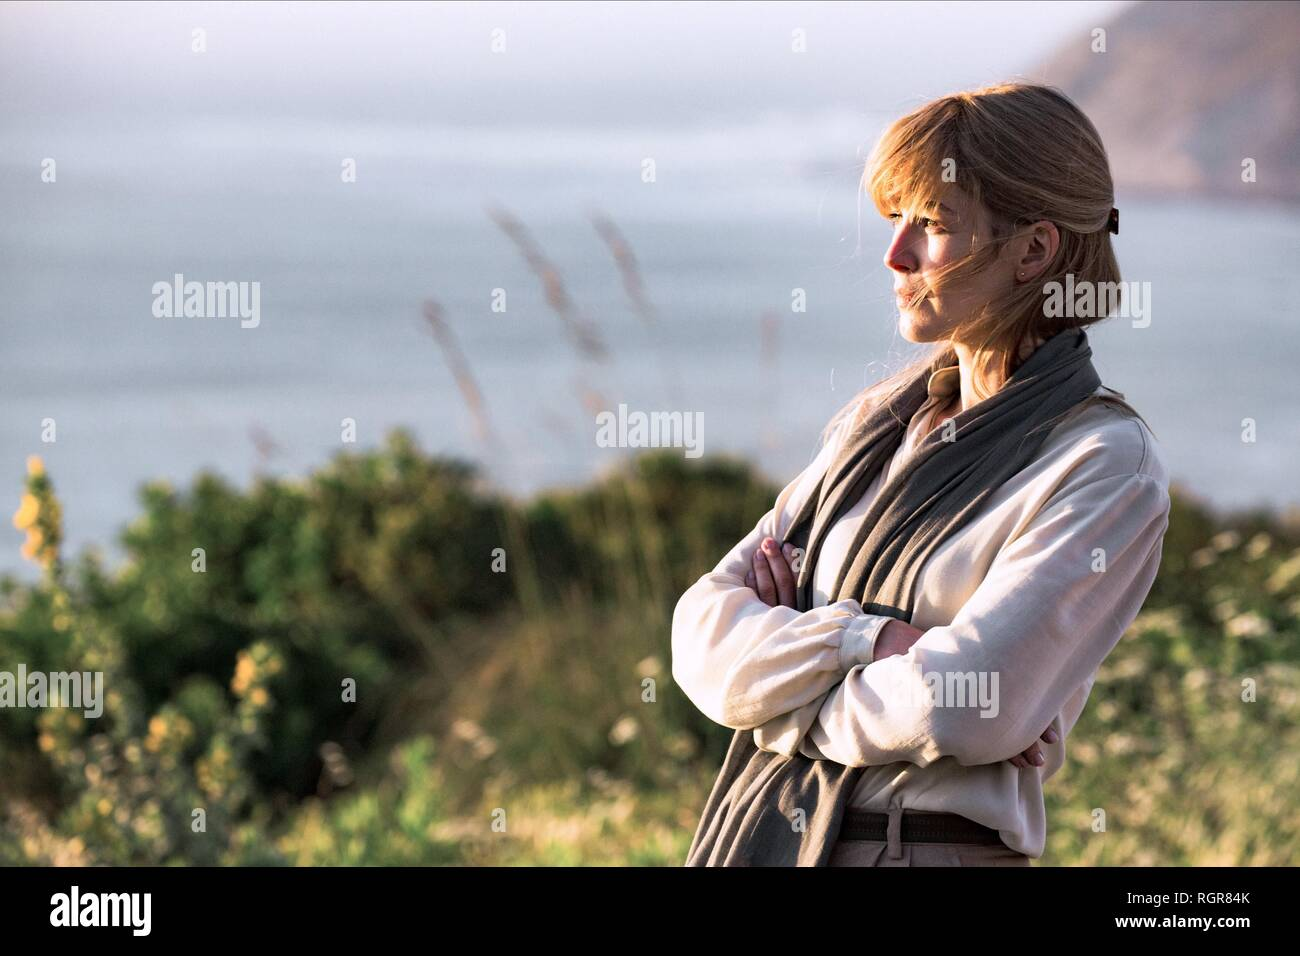 ROSAMUND PIKE THE NEGOTIATOR; BEIRUT (2018) - Stock Image